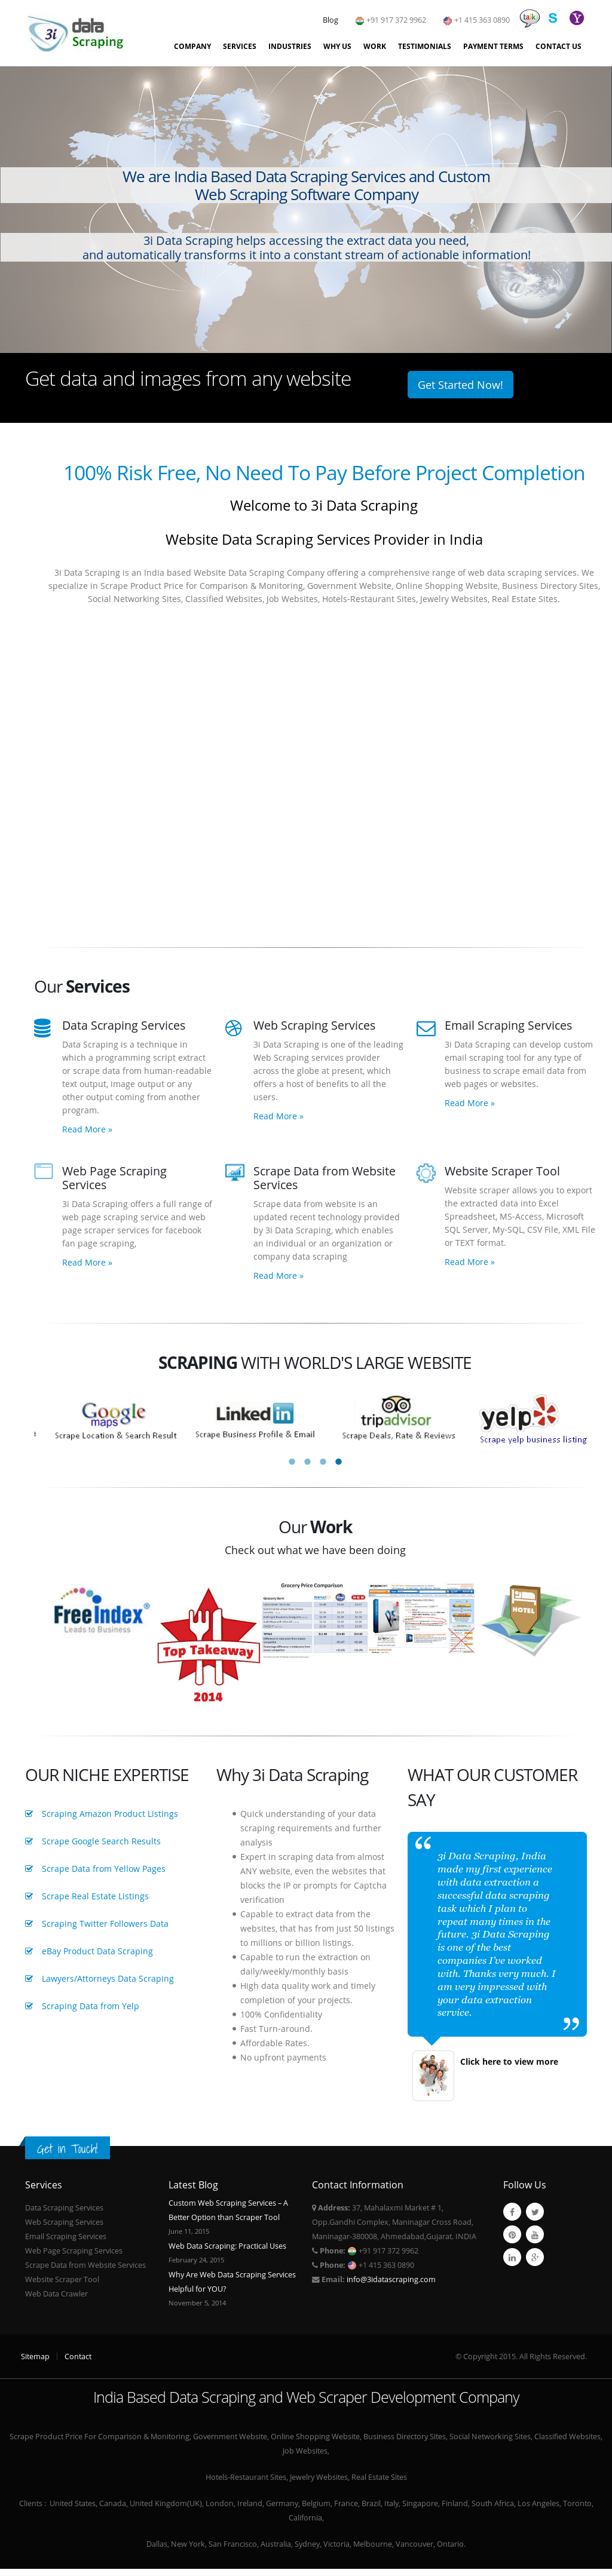 3i Data Scraping - Web Data Scraping Company Competitors